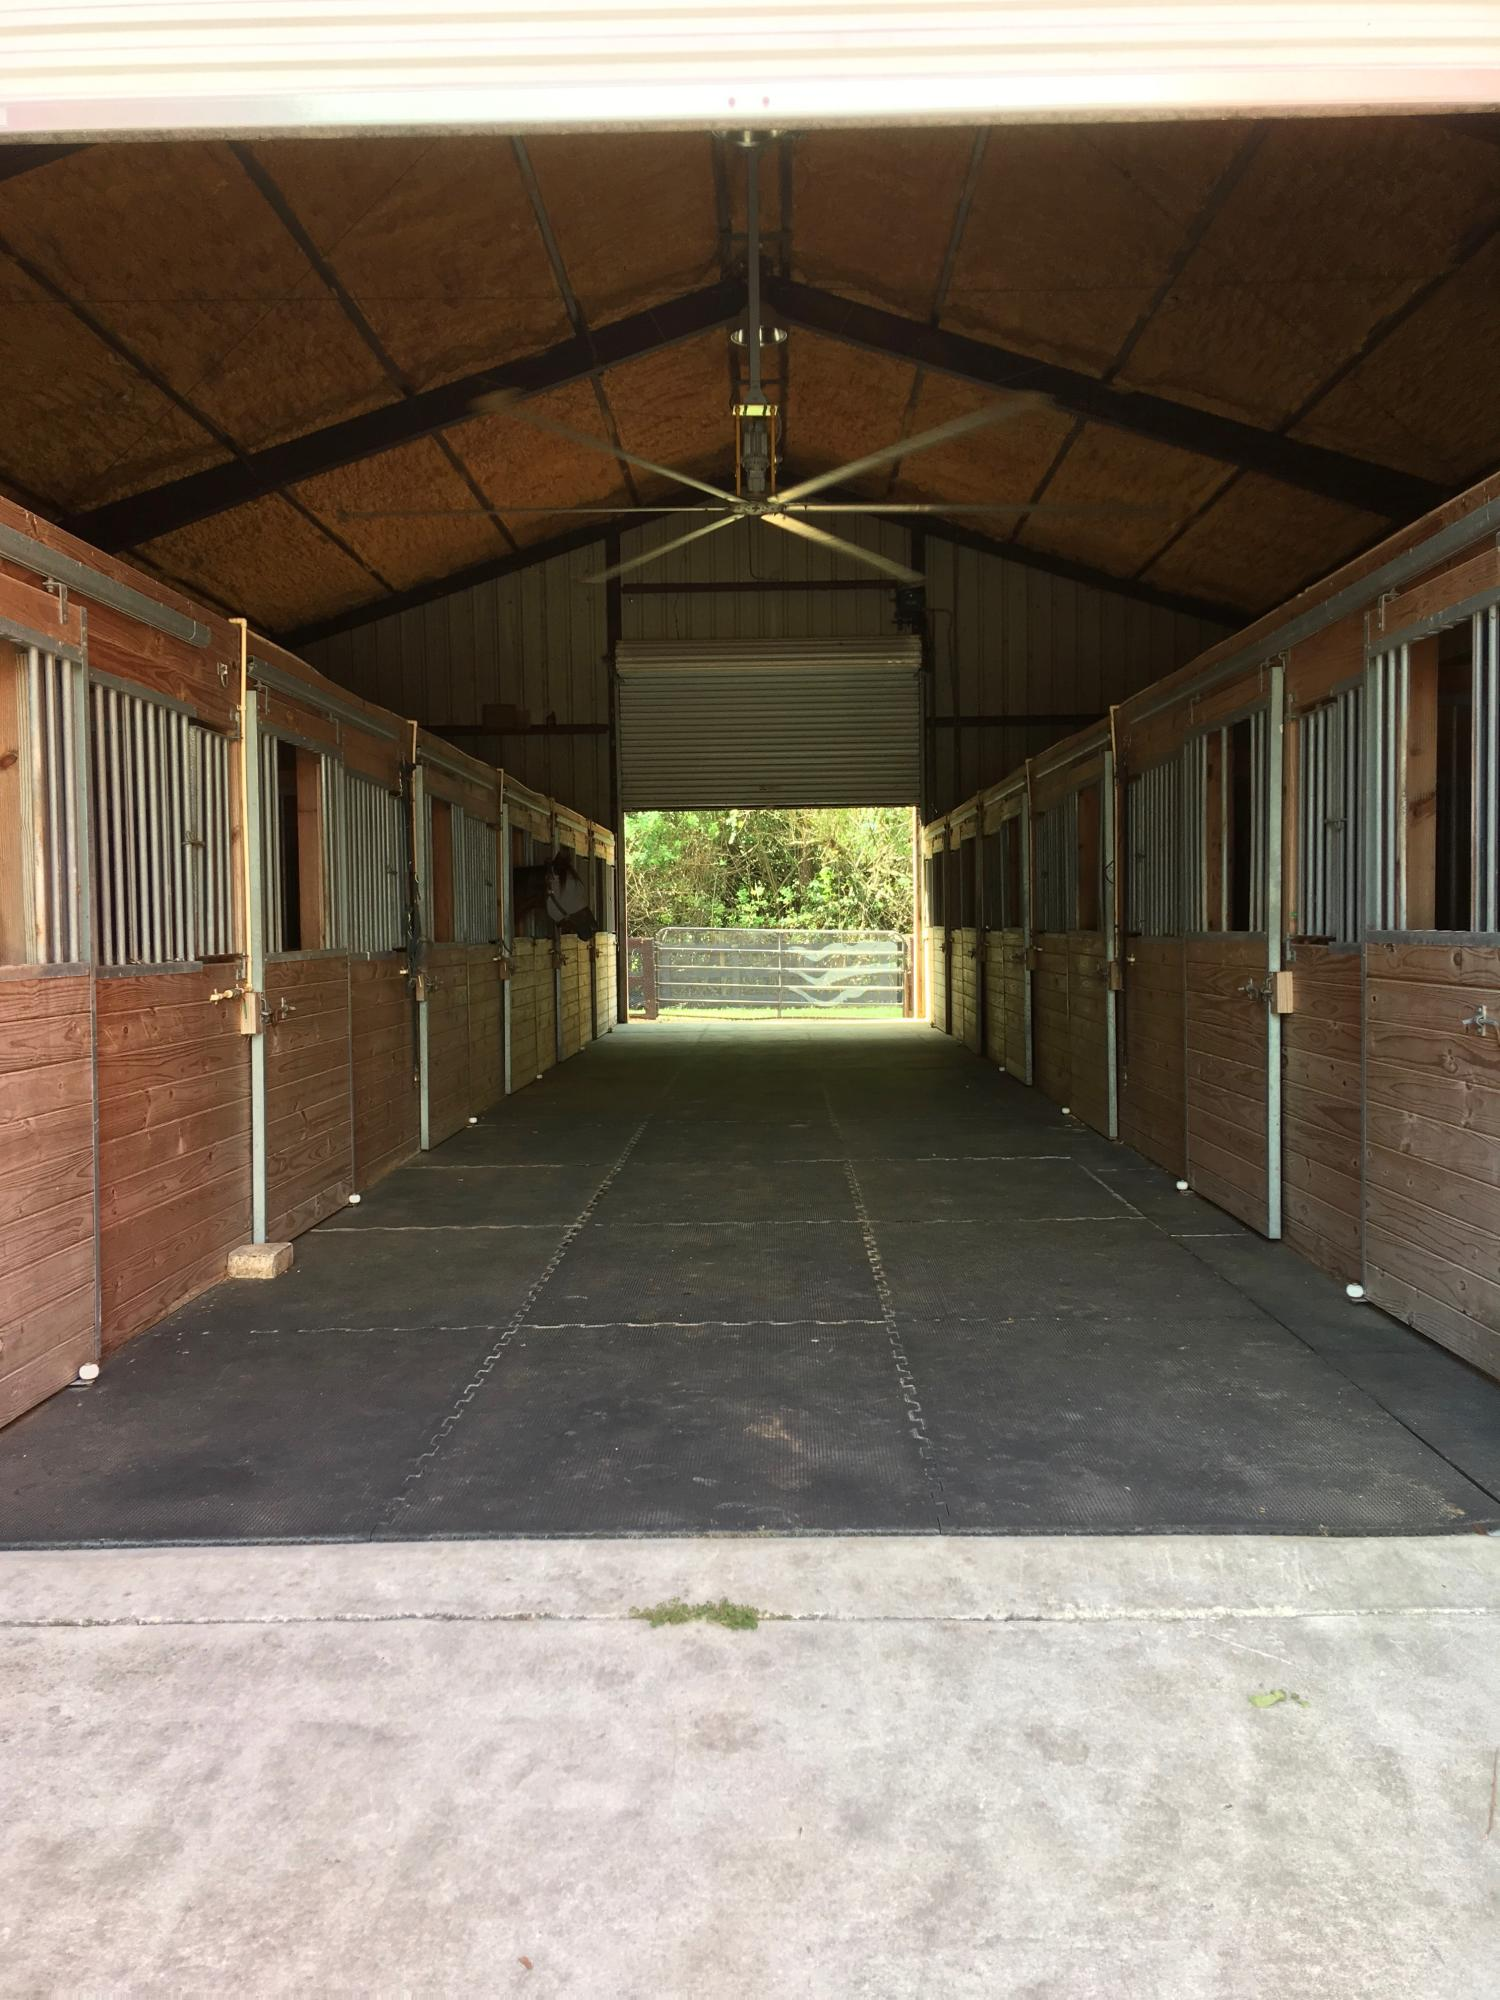 13053 Bryan Road, Loxahatchee Groves, Florida 33470, ,Barn,For Rent,Bryan,RX-10575158